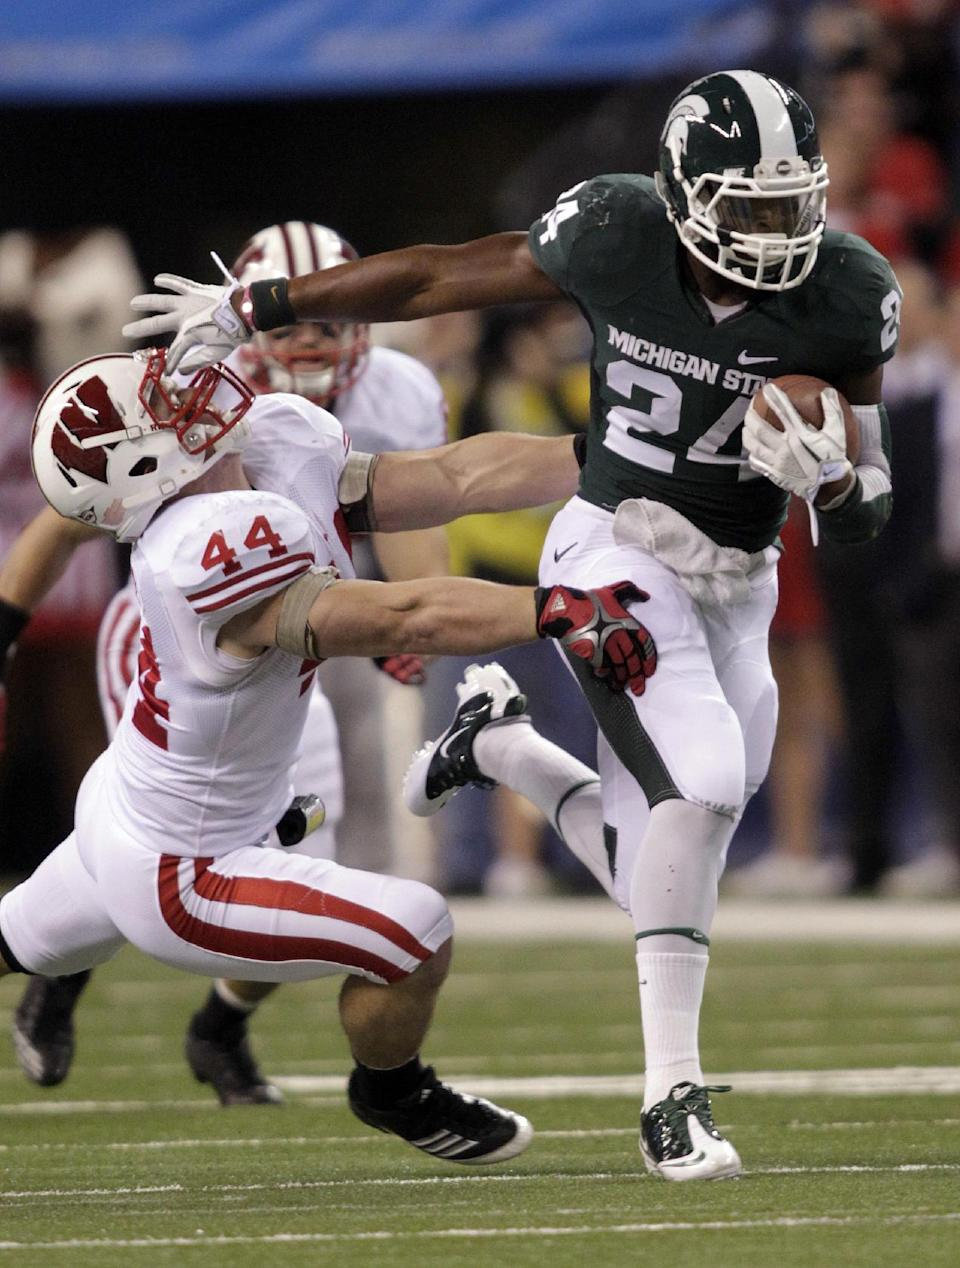 Michigan State's Le'Veon Bell runs out of the tackle of Wisconsin's Chris Borland during the first half of the Big Ten conference championship NCAA college football game, Saturday, Dec. 3, 2011, in Indianapolis.  (AP Photo/AJ Mast)